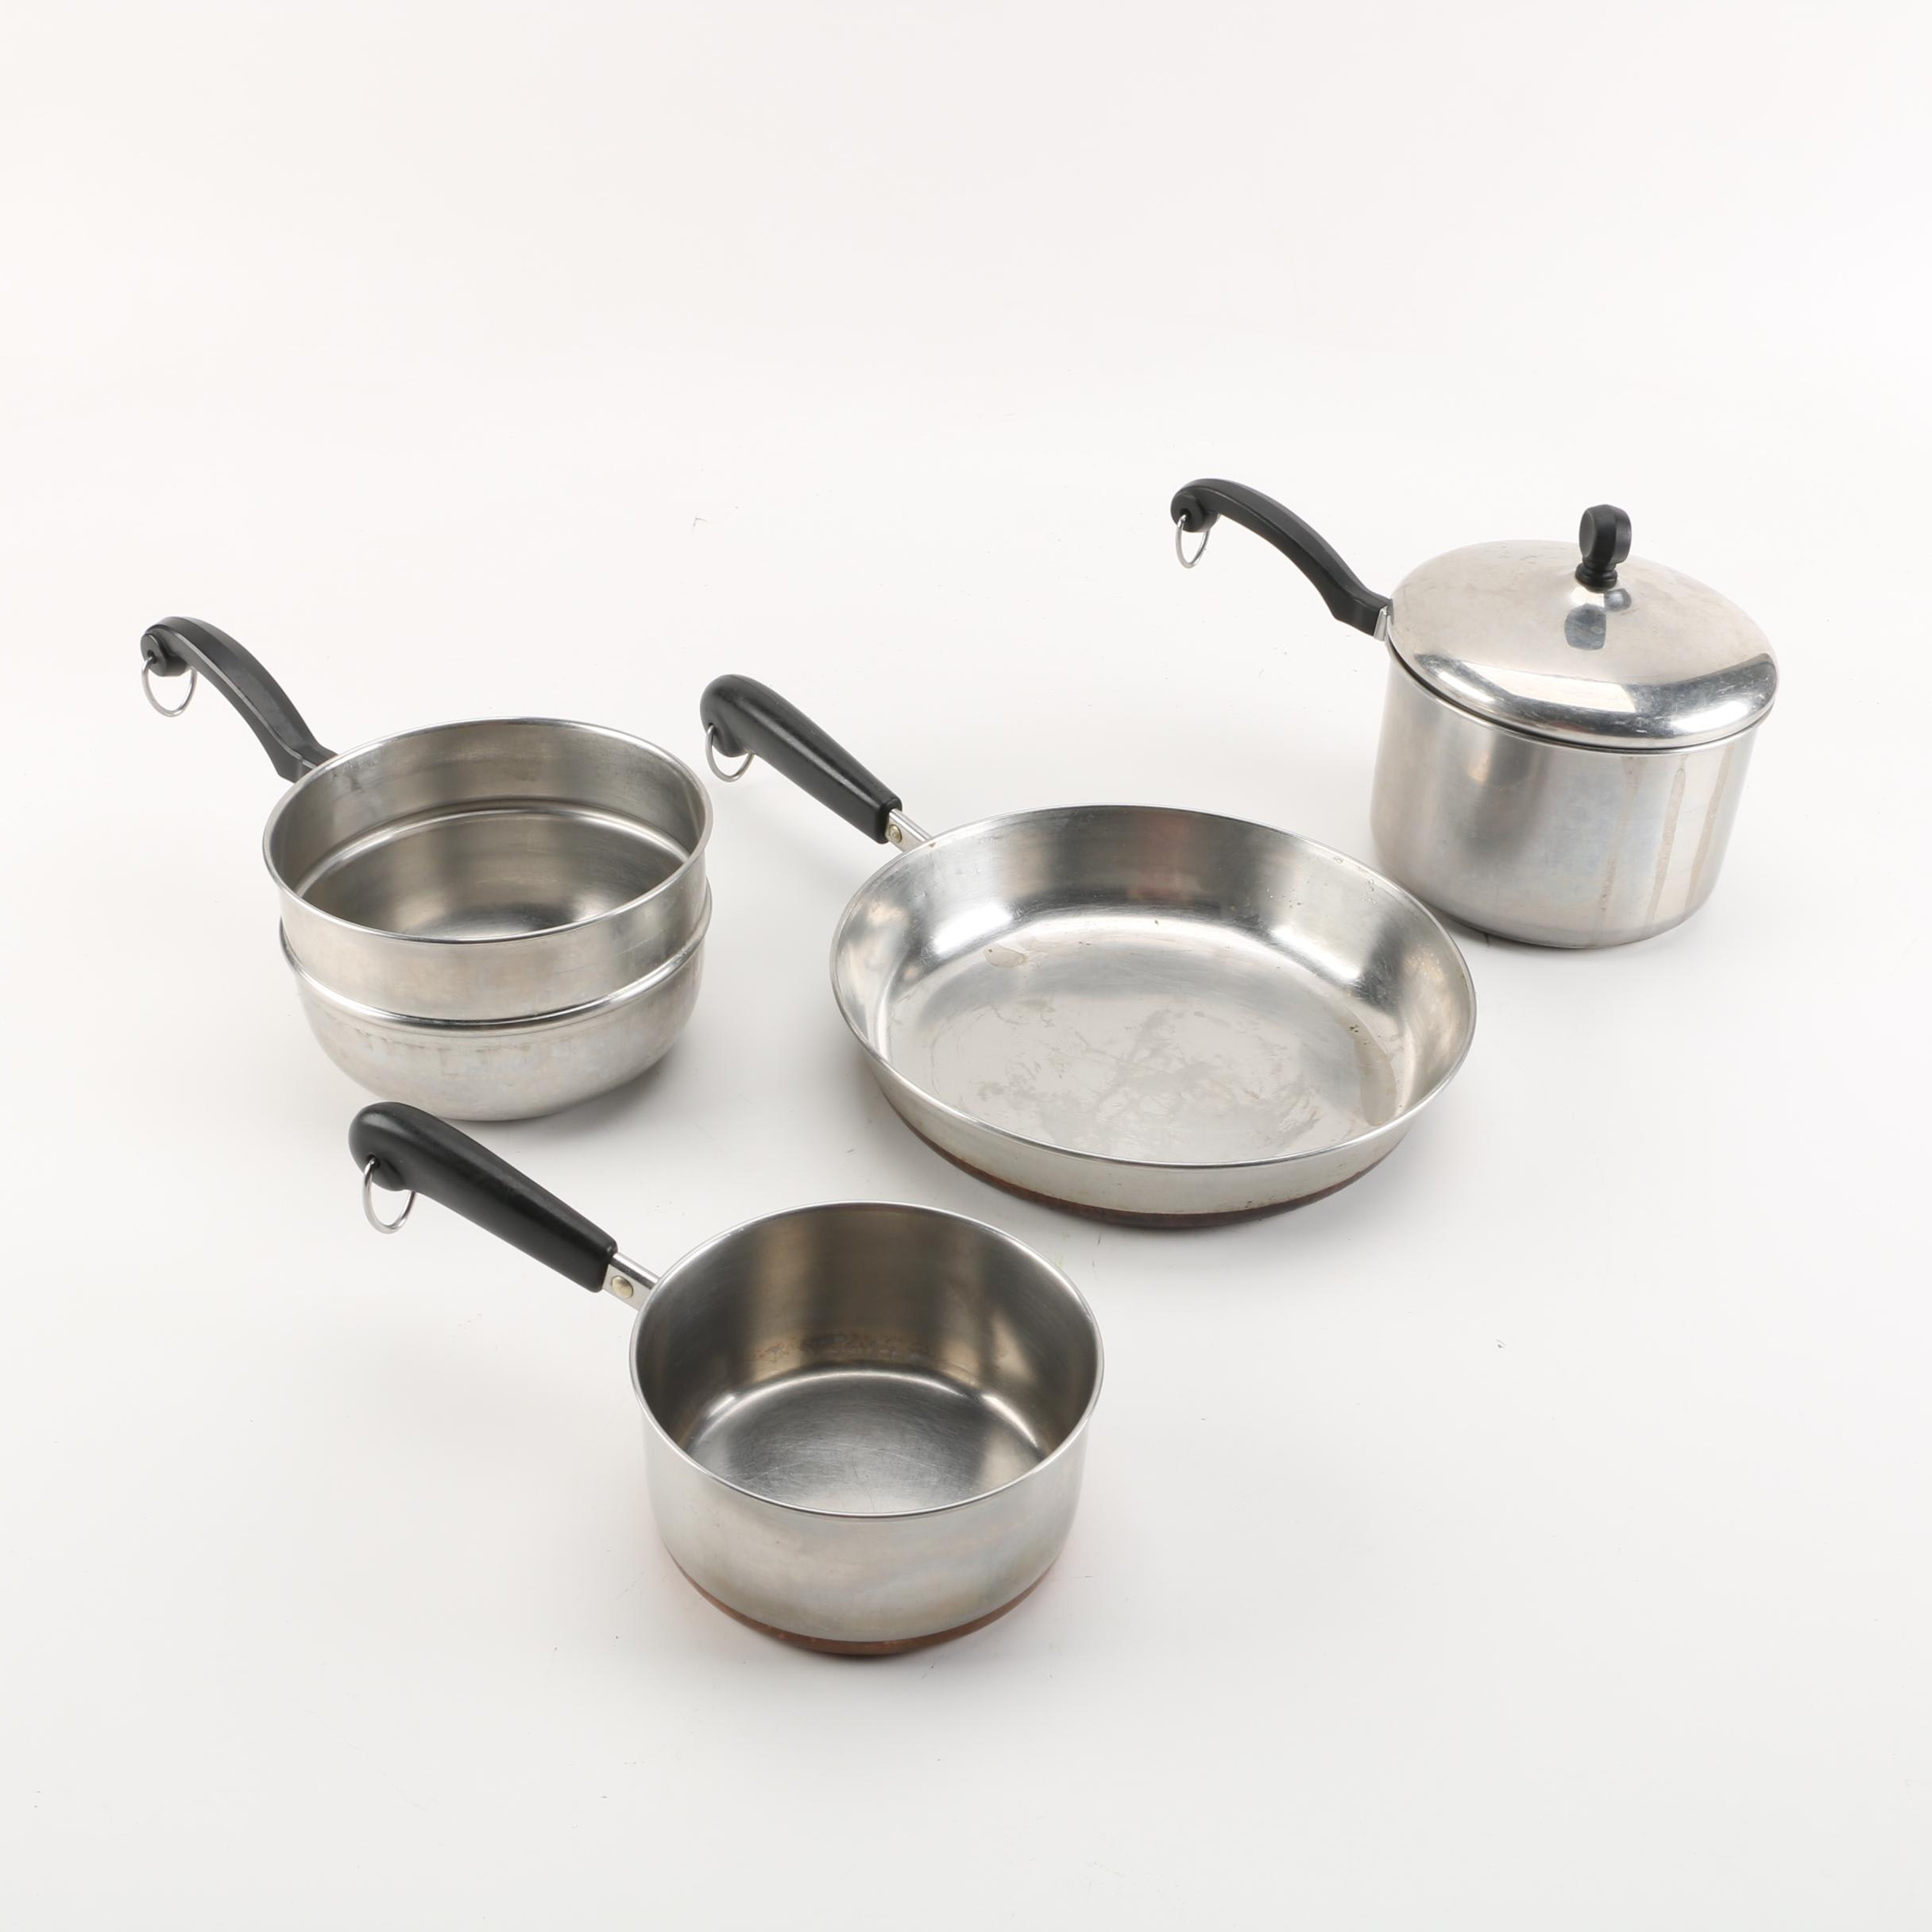 Stainless Steel Pots and Pans including Revere Ware and Farberware